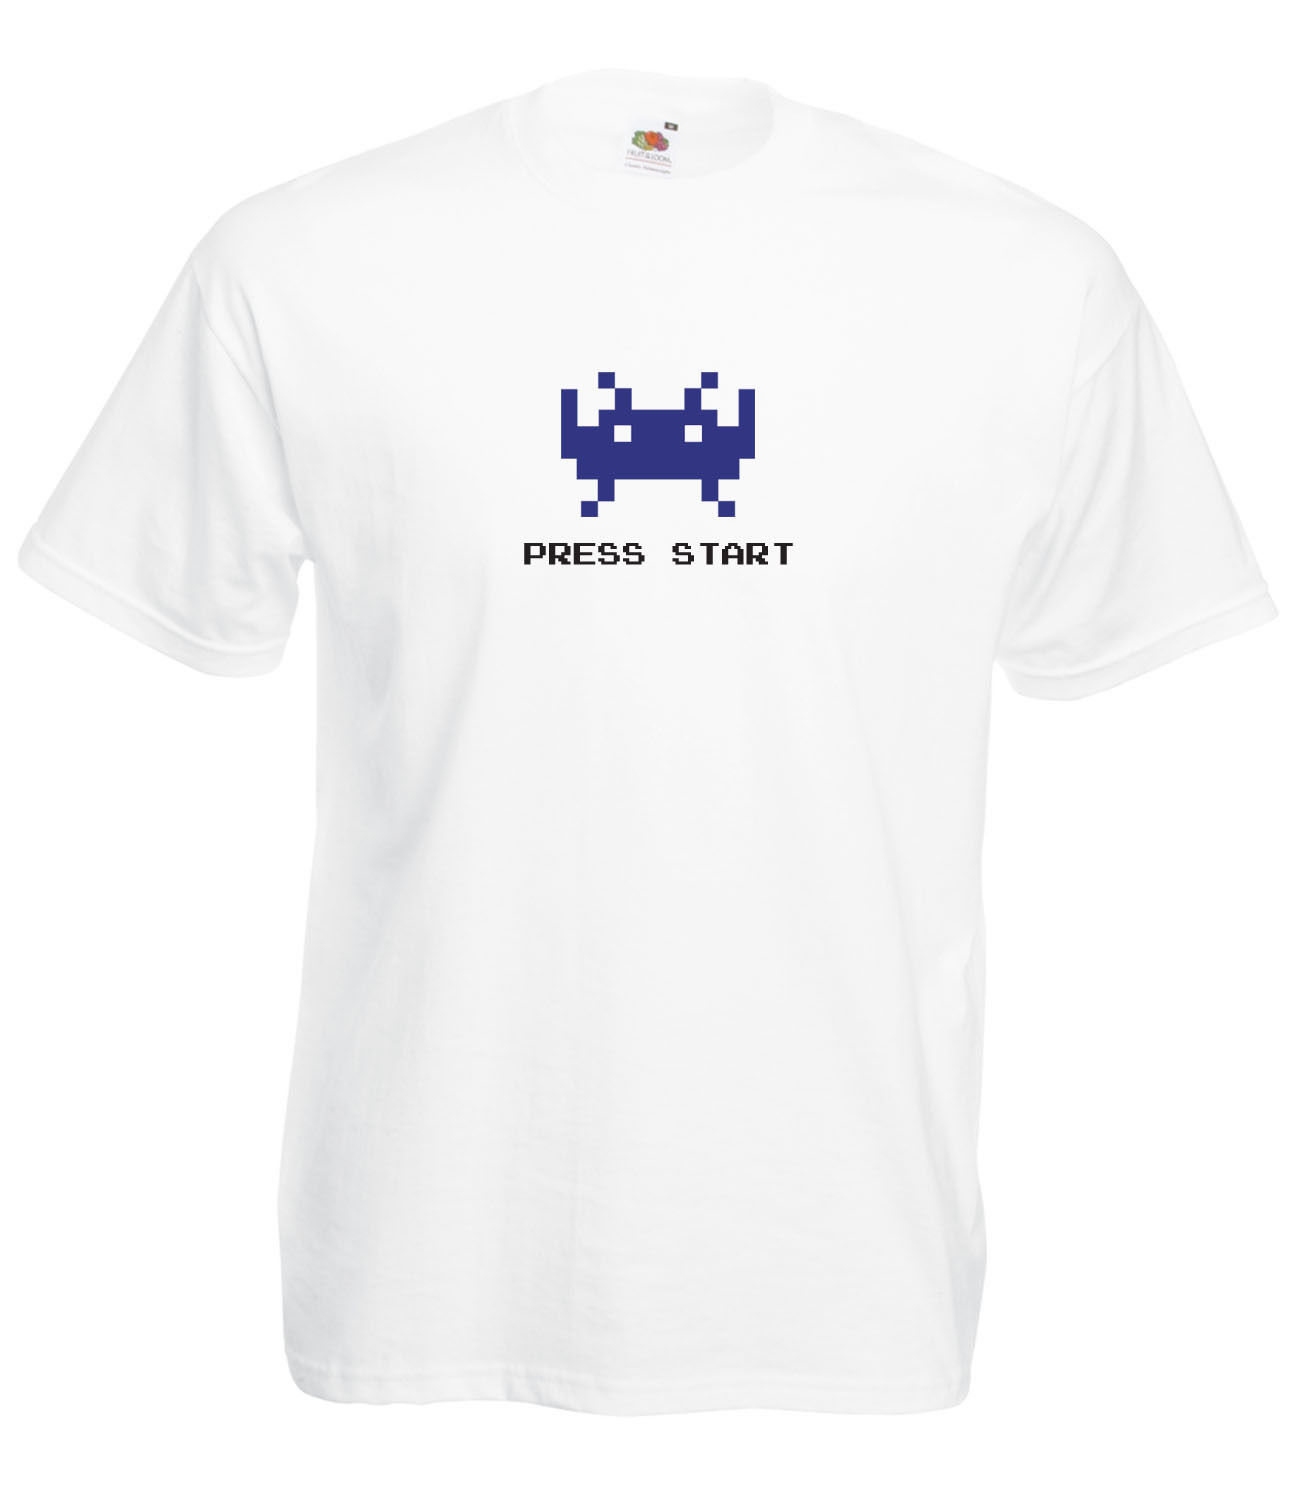 RETRO-SPACE-INVADERS-INSPIRED-GRAPHIC-HIGH-QUALITY-FLOCK-FULL-COLOUR-T-SHIRT